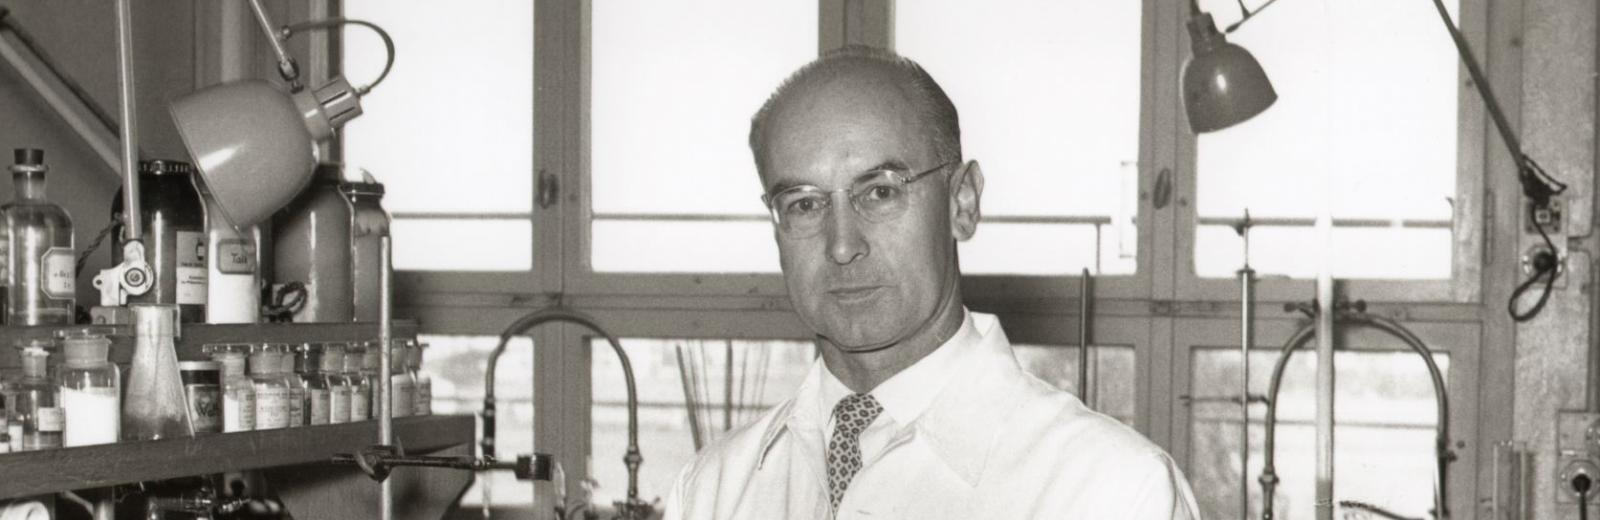 Albert Hofmann with a model of the LSD molecule in the early 1950s © Novartis corporate archive